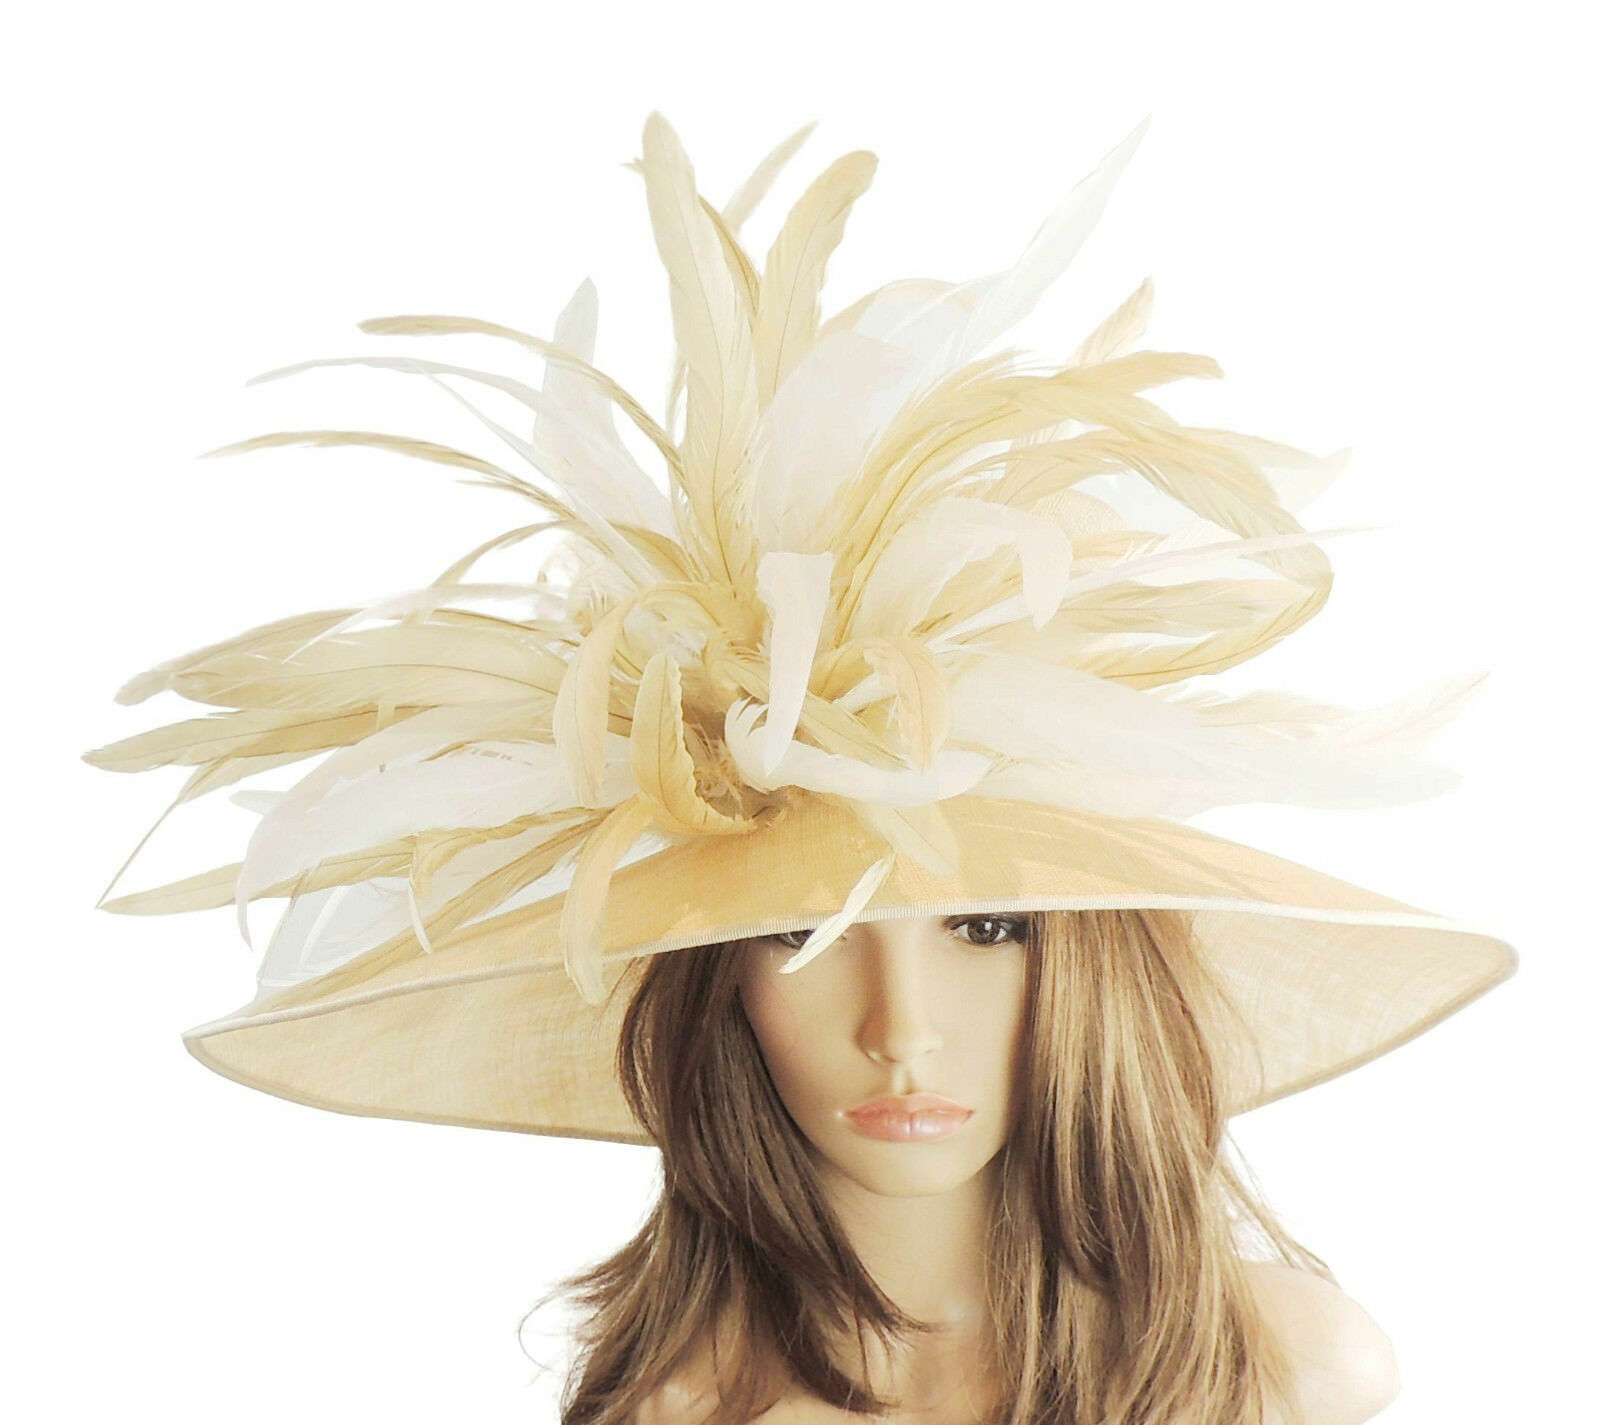 Mink Beige & Cream Large Ascot Hat for Weddings, Ascot, Melbourne Cup HW2